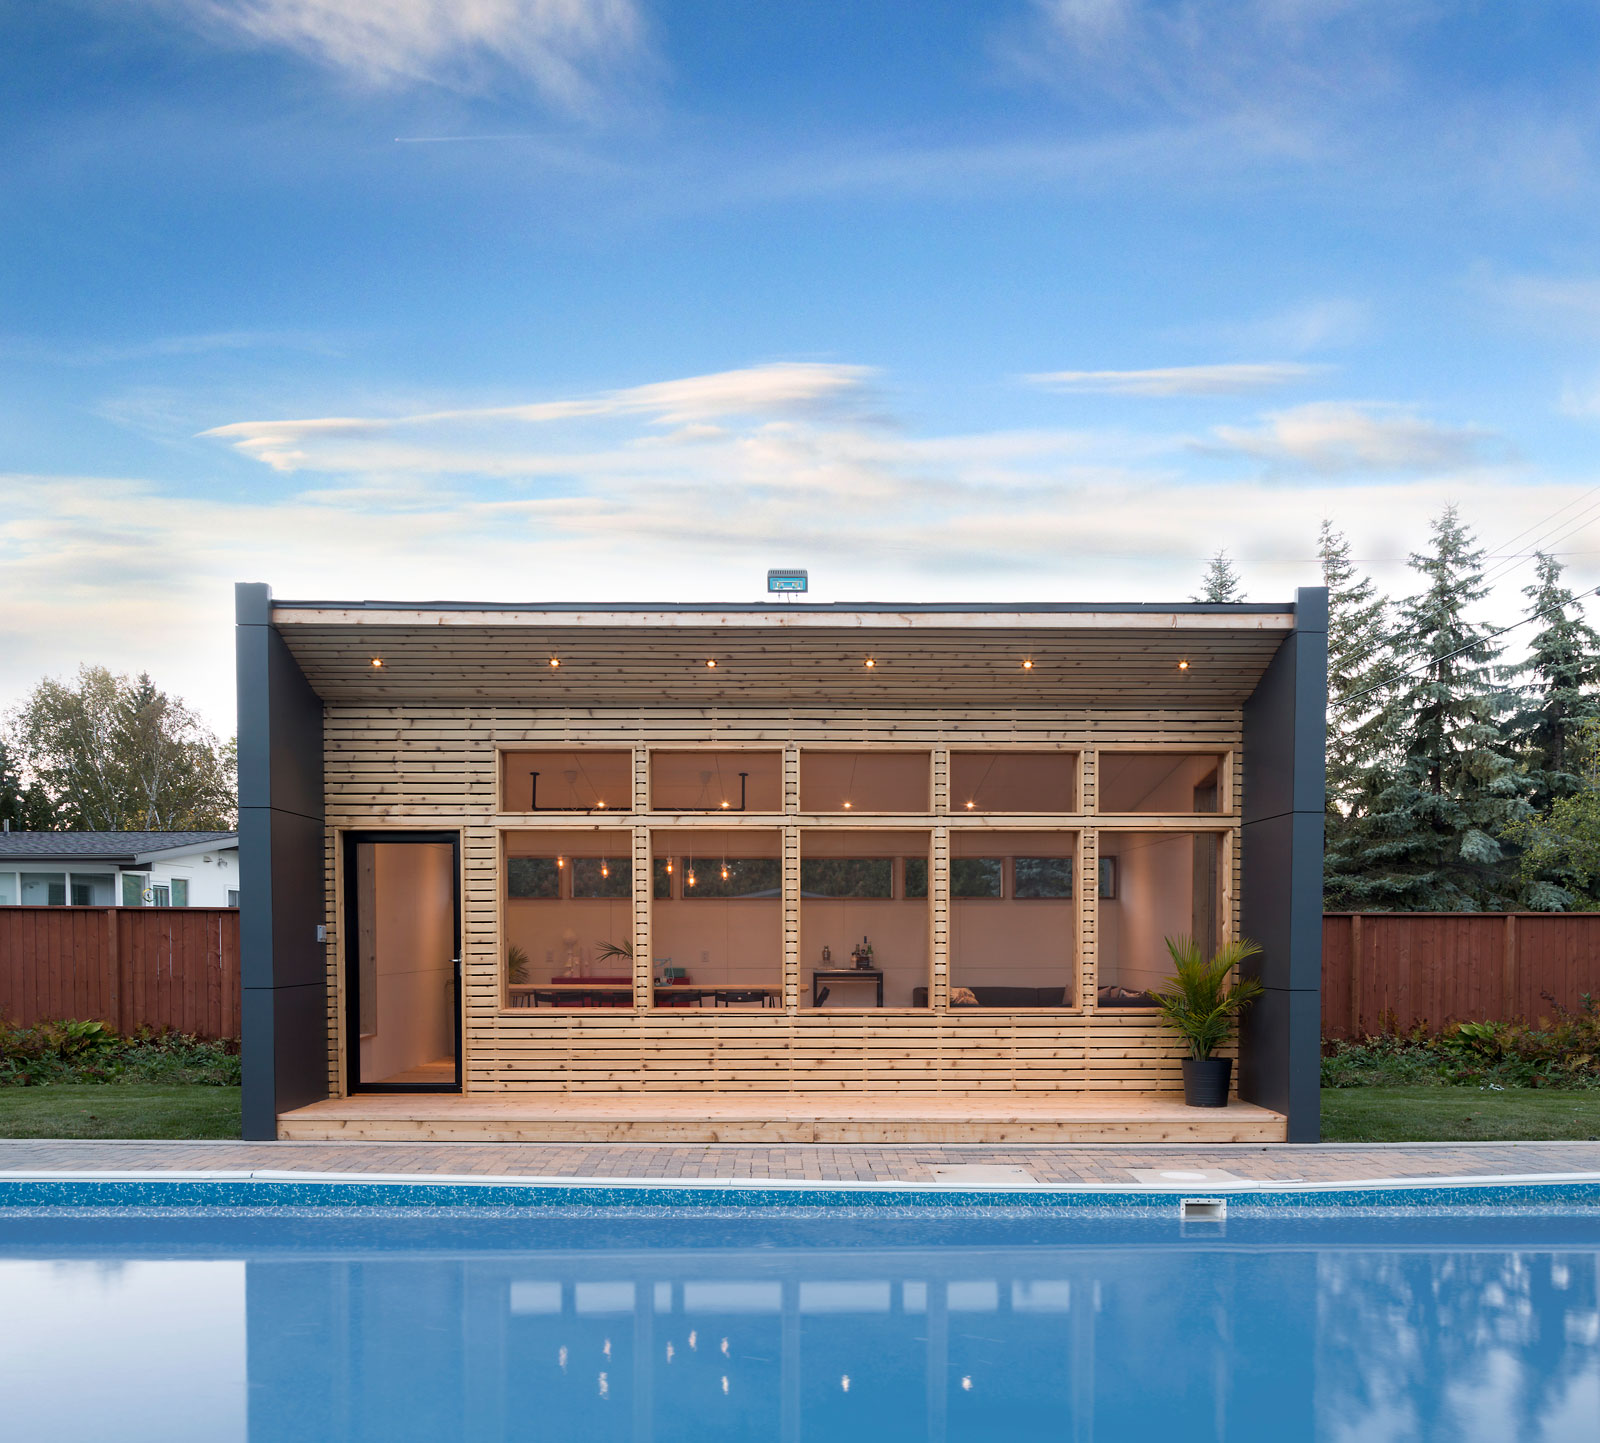 Charleswood - Back Yard Outdoor Dining Room & Living Room